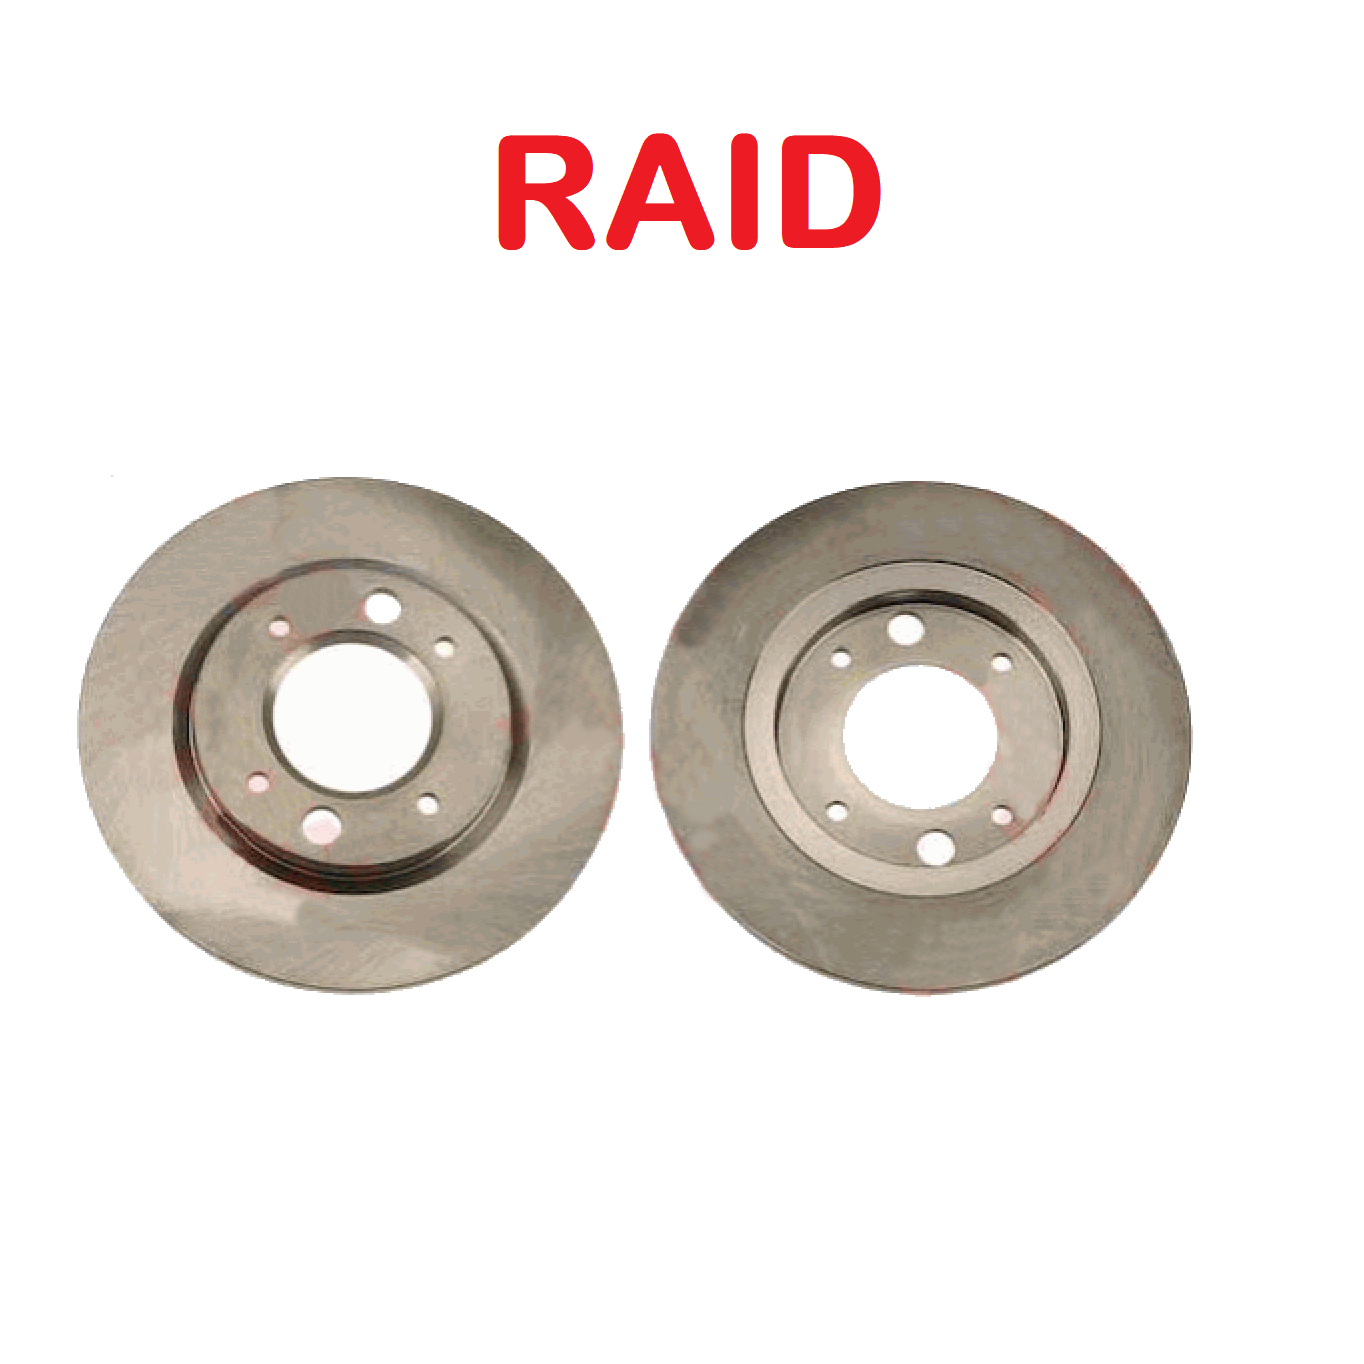 PAIR OF REAR BRAKE DISCS PEUGEOT 504 - 505 - 604 RAID FOR 424661